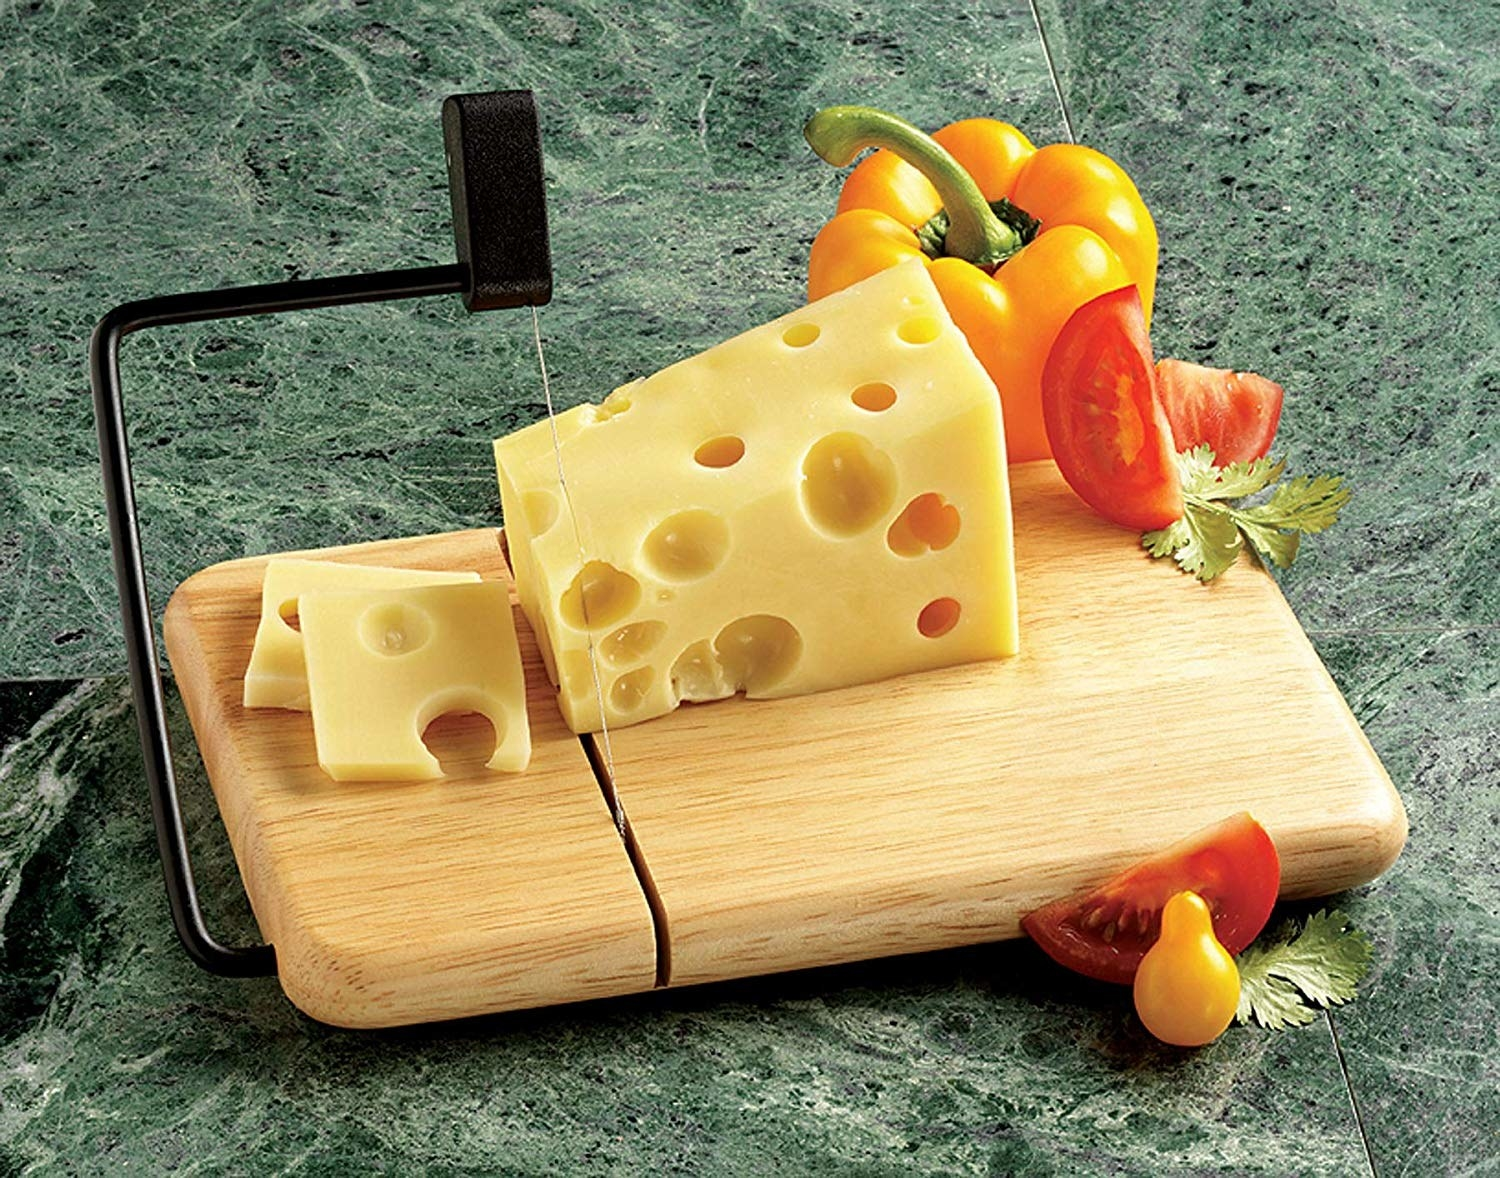 Cheese slicer with cheese on top